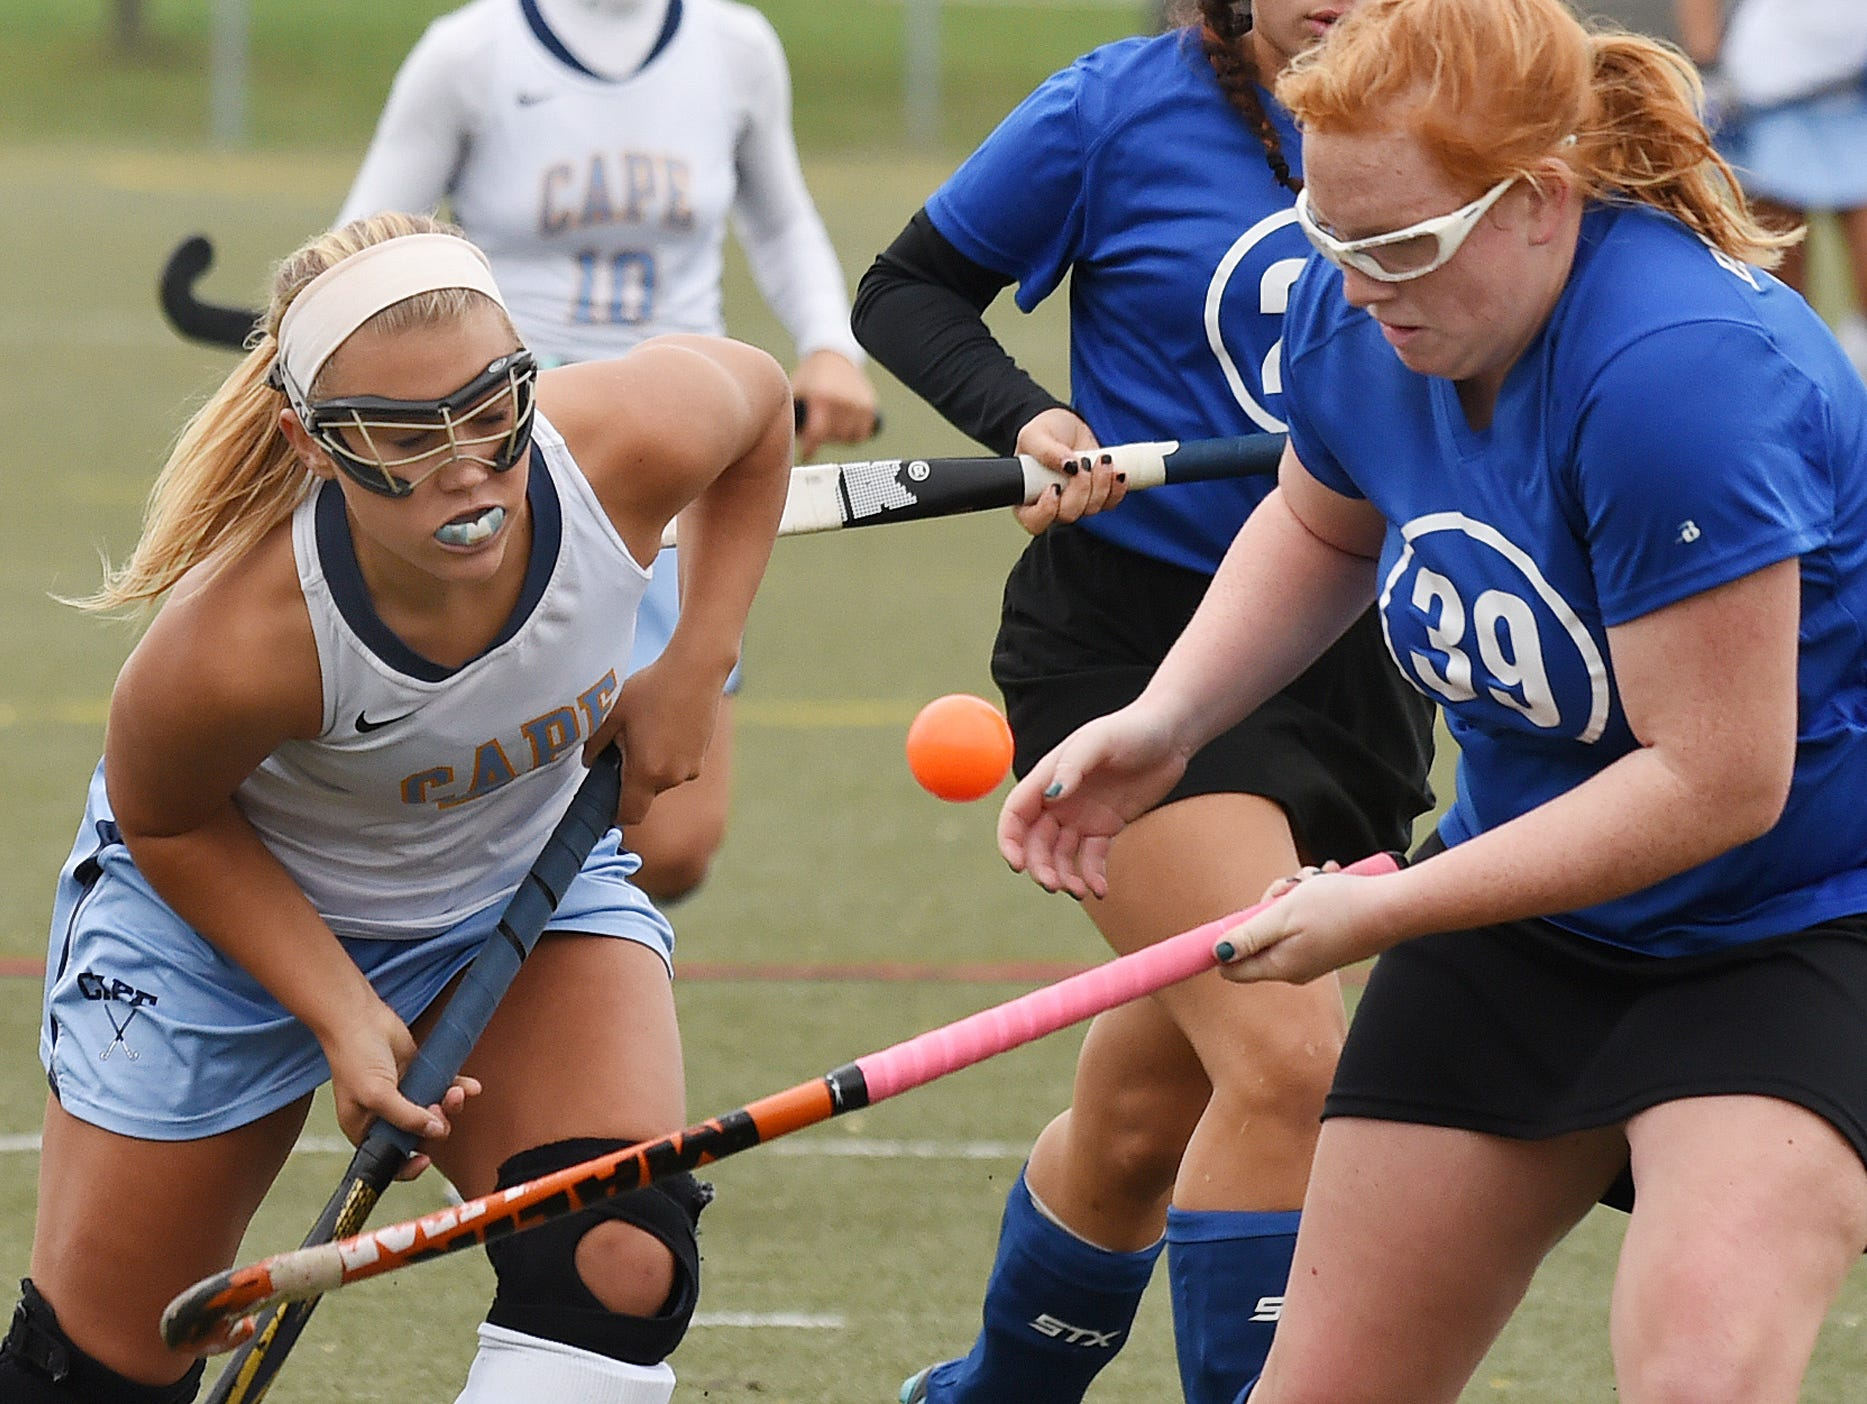 Brandywine's Laurel Bradley and Cape's Sydney Ostroski fight for the ball as Cape Henlopen High School (white) hosted Brandywine HS (blue) in the 1st round of the Delaware State HS Hockey Tournament at the school near Lewes on Wednesday November 11.